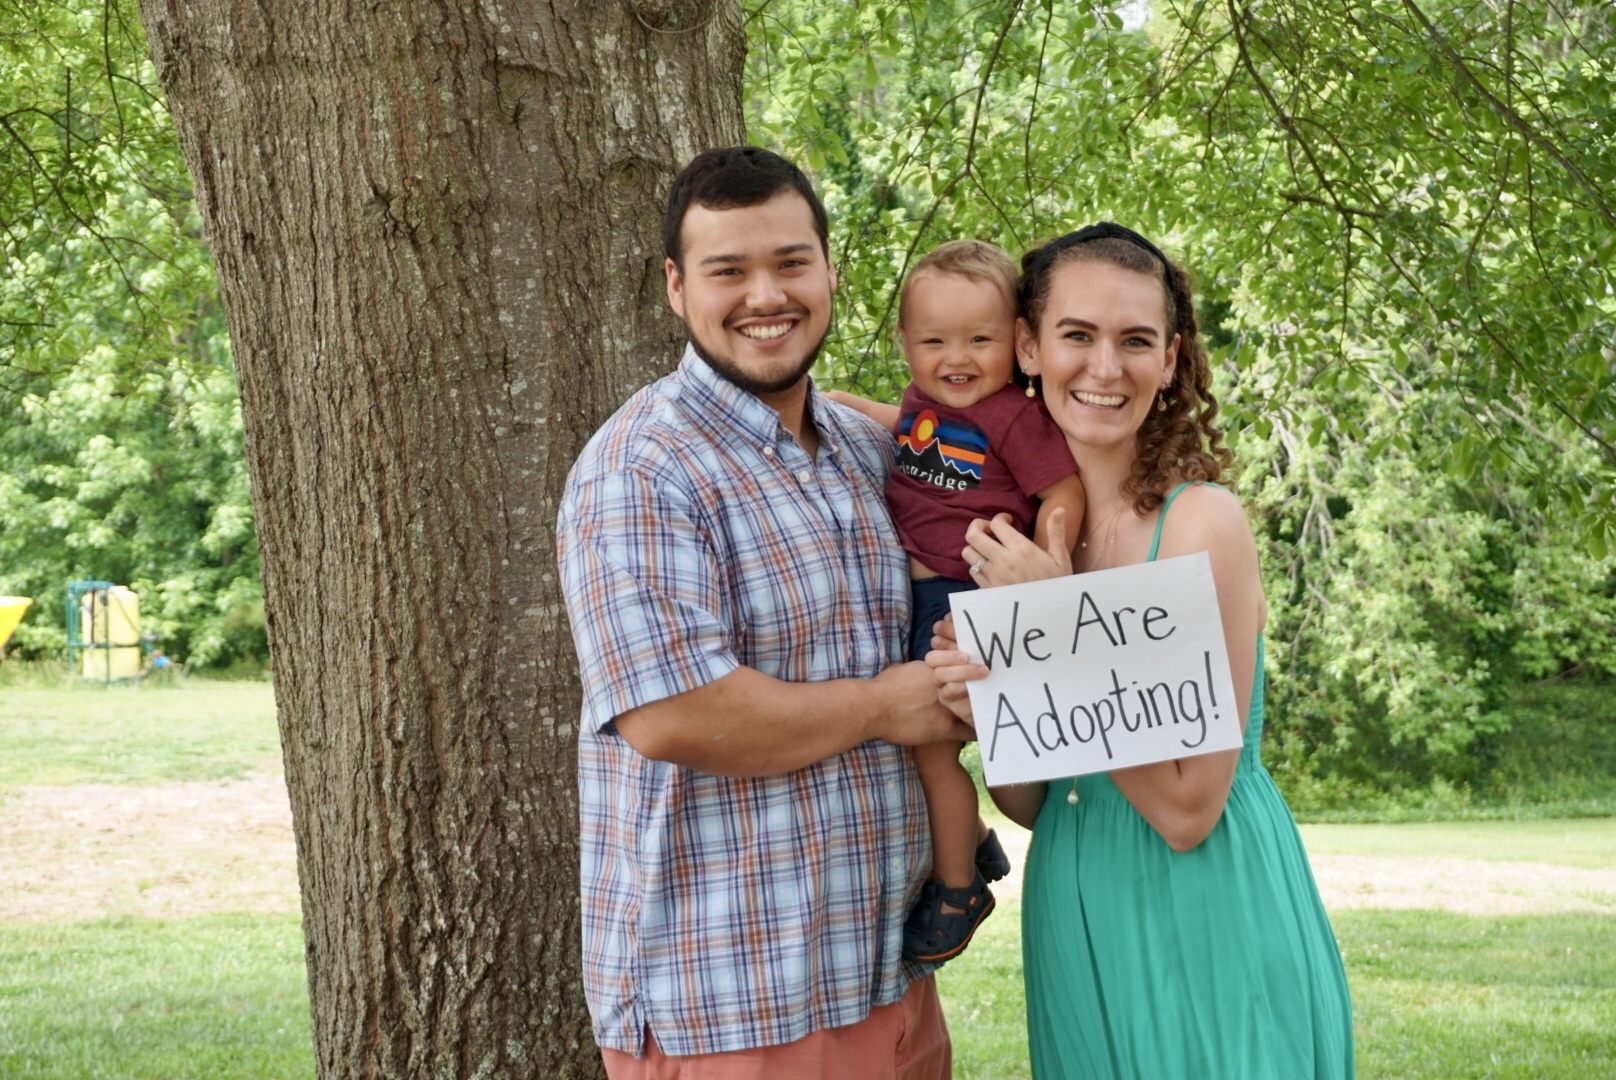 Downer Family Adoption is raising money on AdoptTogether for their adoption from .